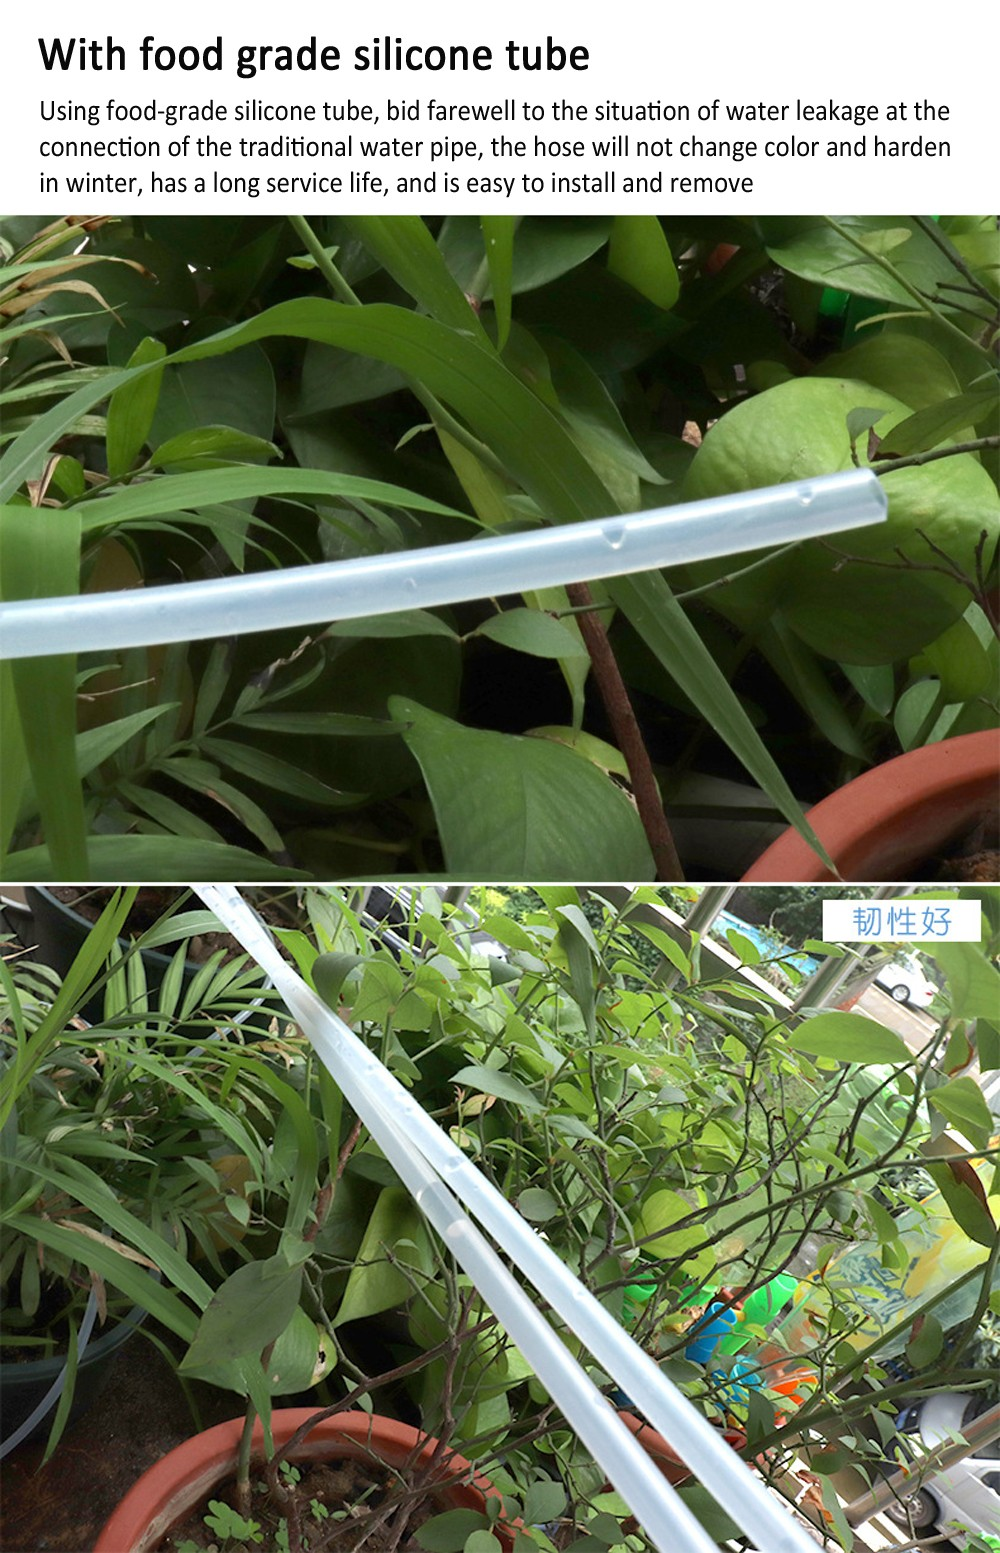 Solar Automatic Splayer Watering Device Smart Lazy Potted Plant Drip Irrigation Replenishment Timer Garden Irrigation Tool - White Package 1 (with Drop Arrow)